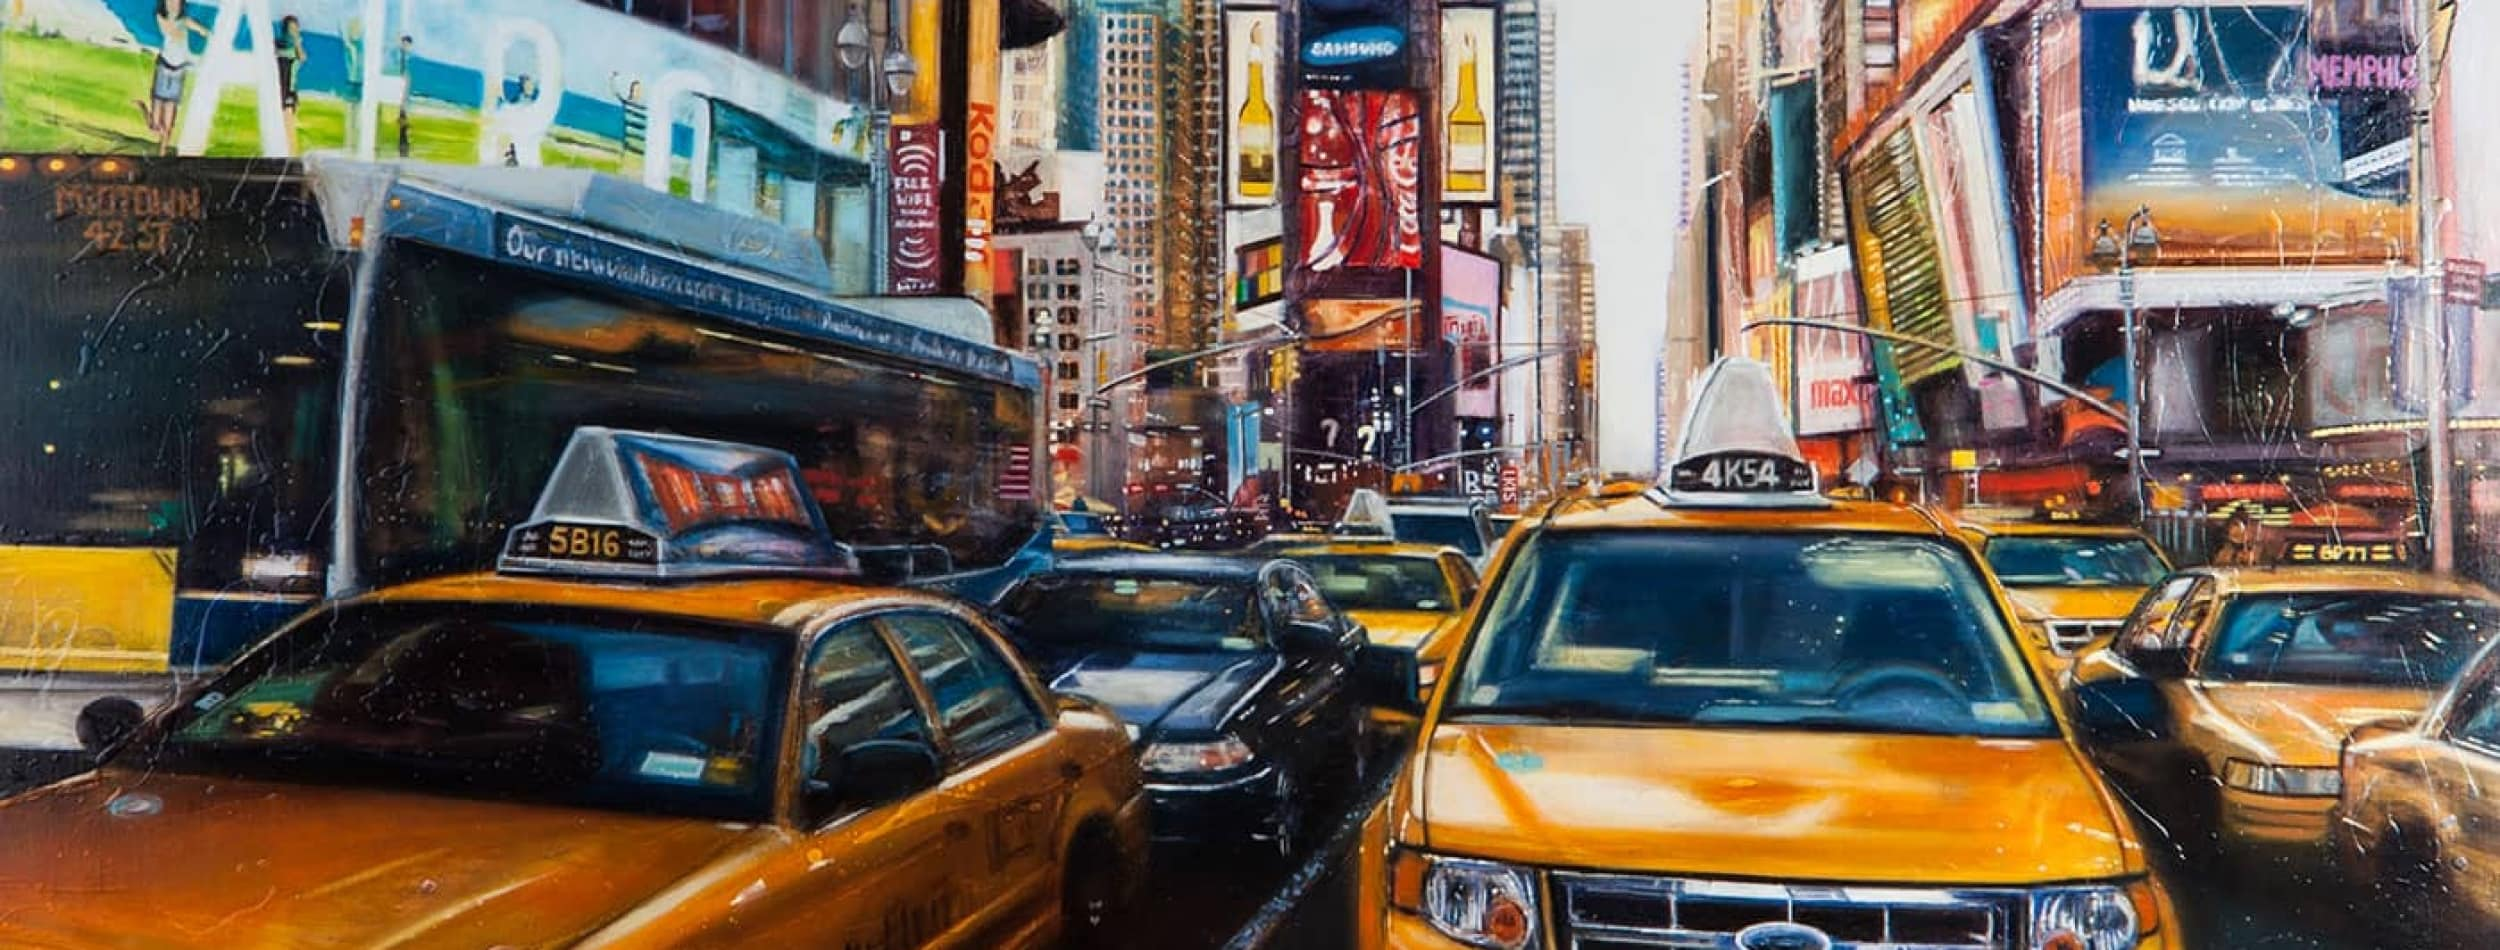 Big-Yellow-Taxis-New-York-min-2500x950_c